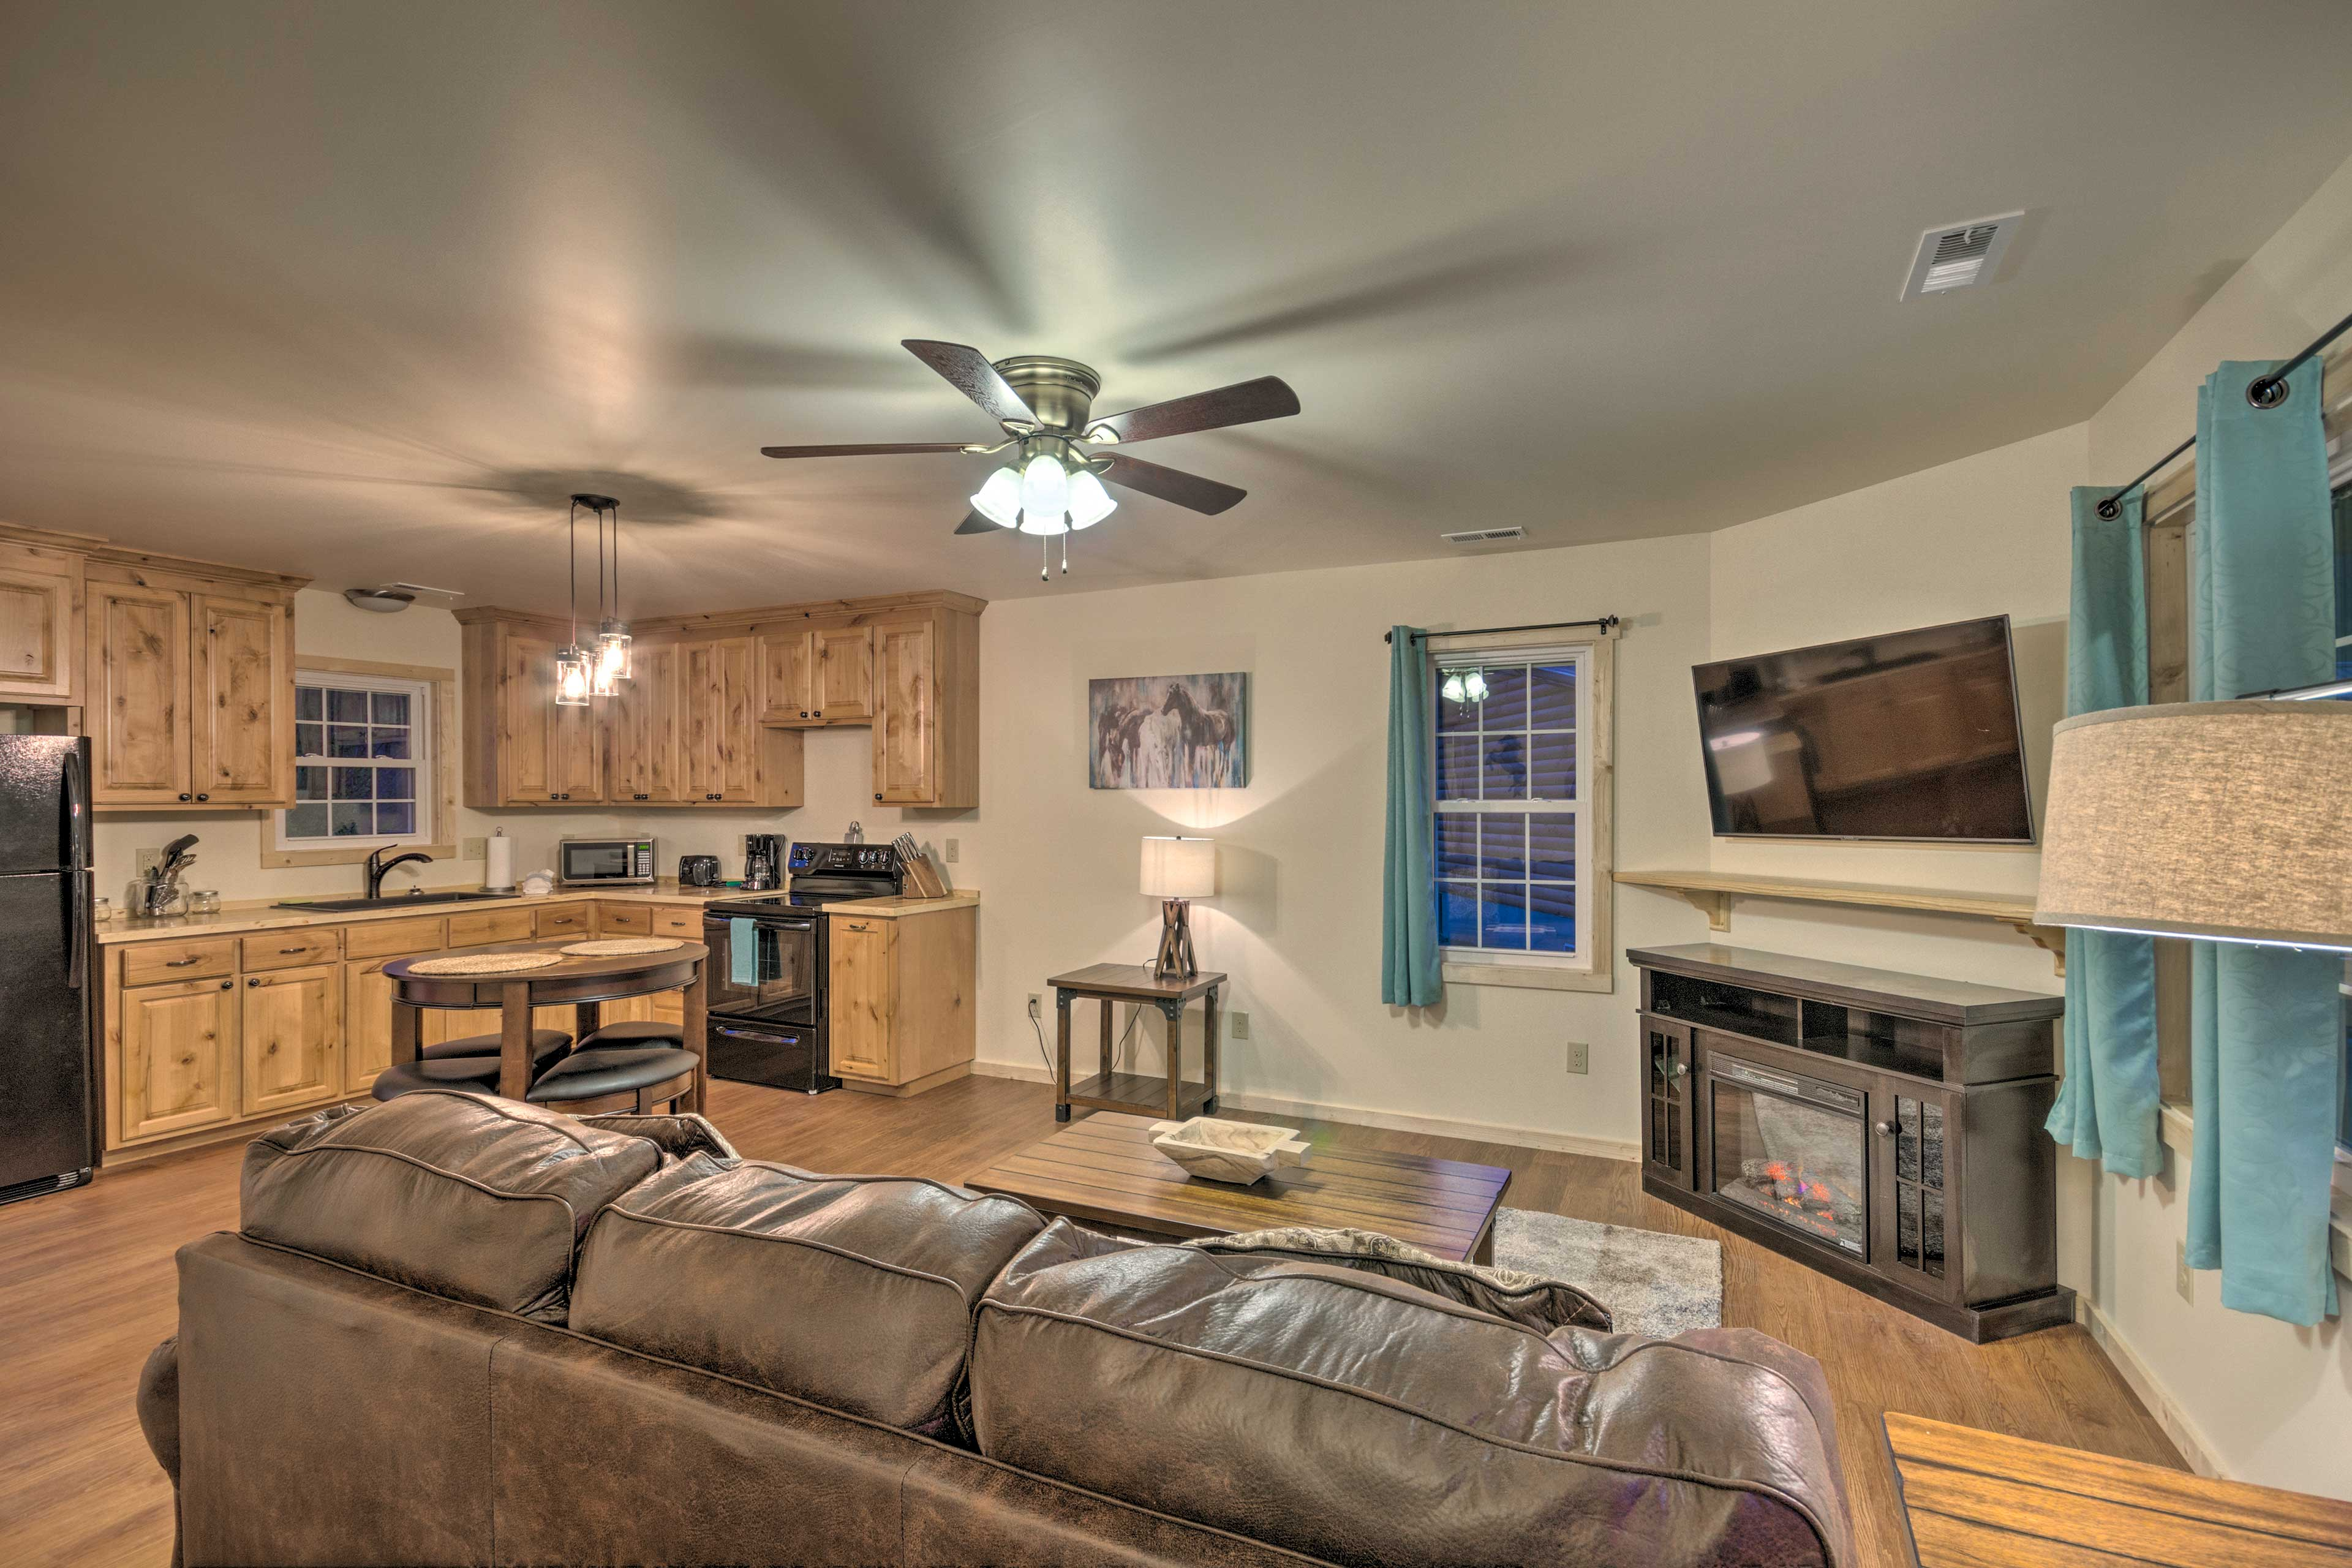 Inside, you'll find 1 bedroom, 1 bathroom, and all of the comforts of home.